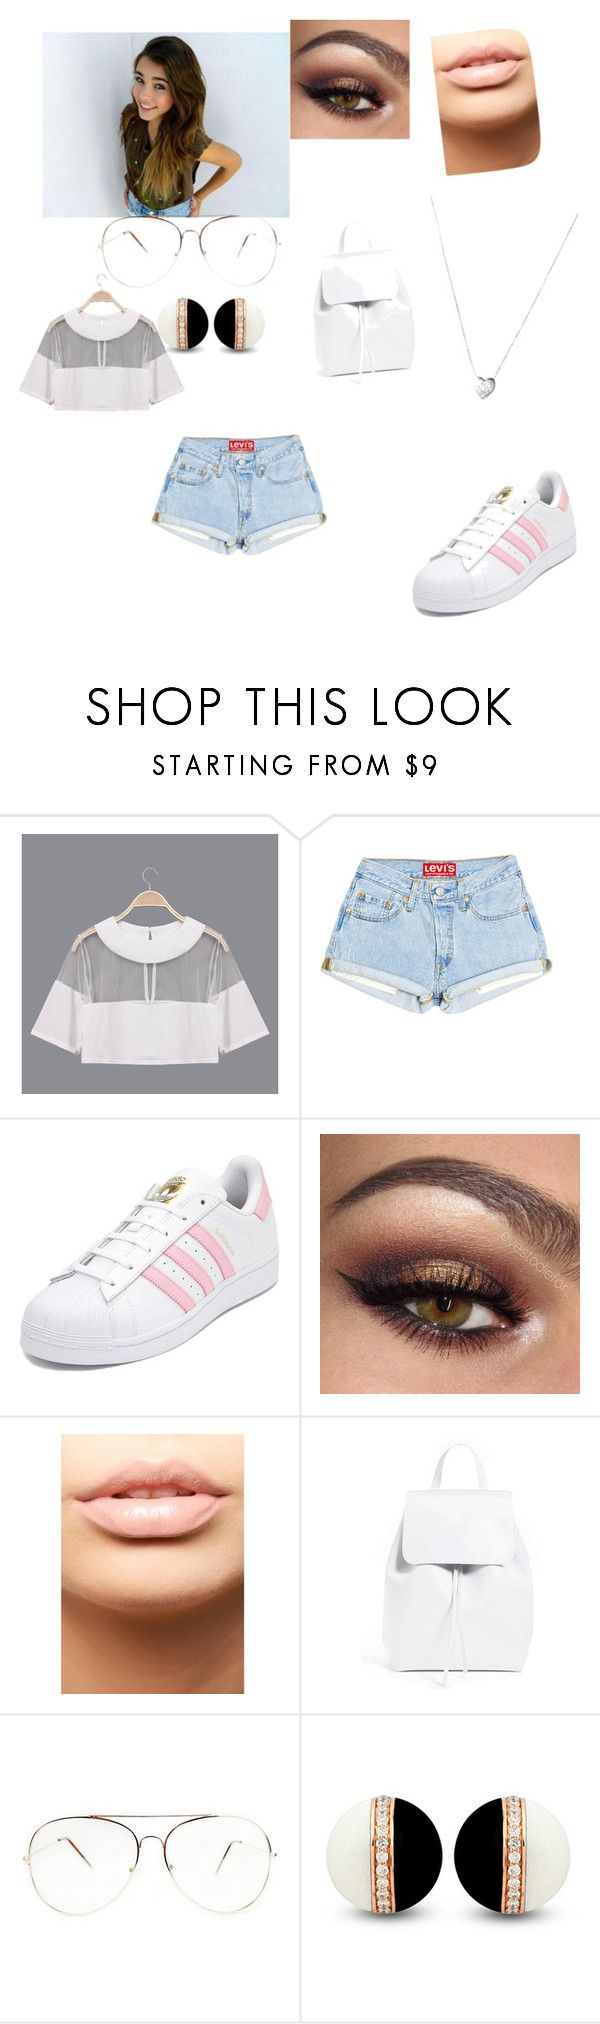 """""""MADDISON BEER INSPIRED LOOK"""" by shawnmendesfangirl ❤ liked on Polyvore featuring adidas, MDMflow, Mansur Gavriel and Links of London"""